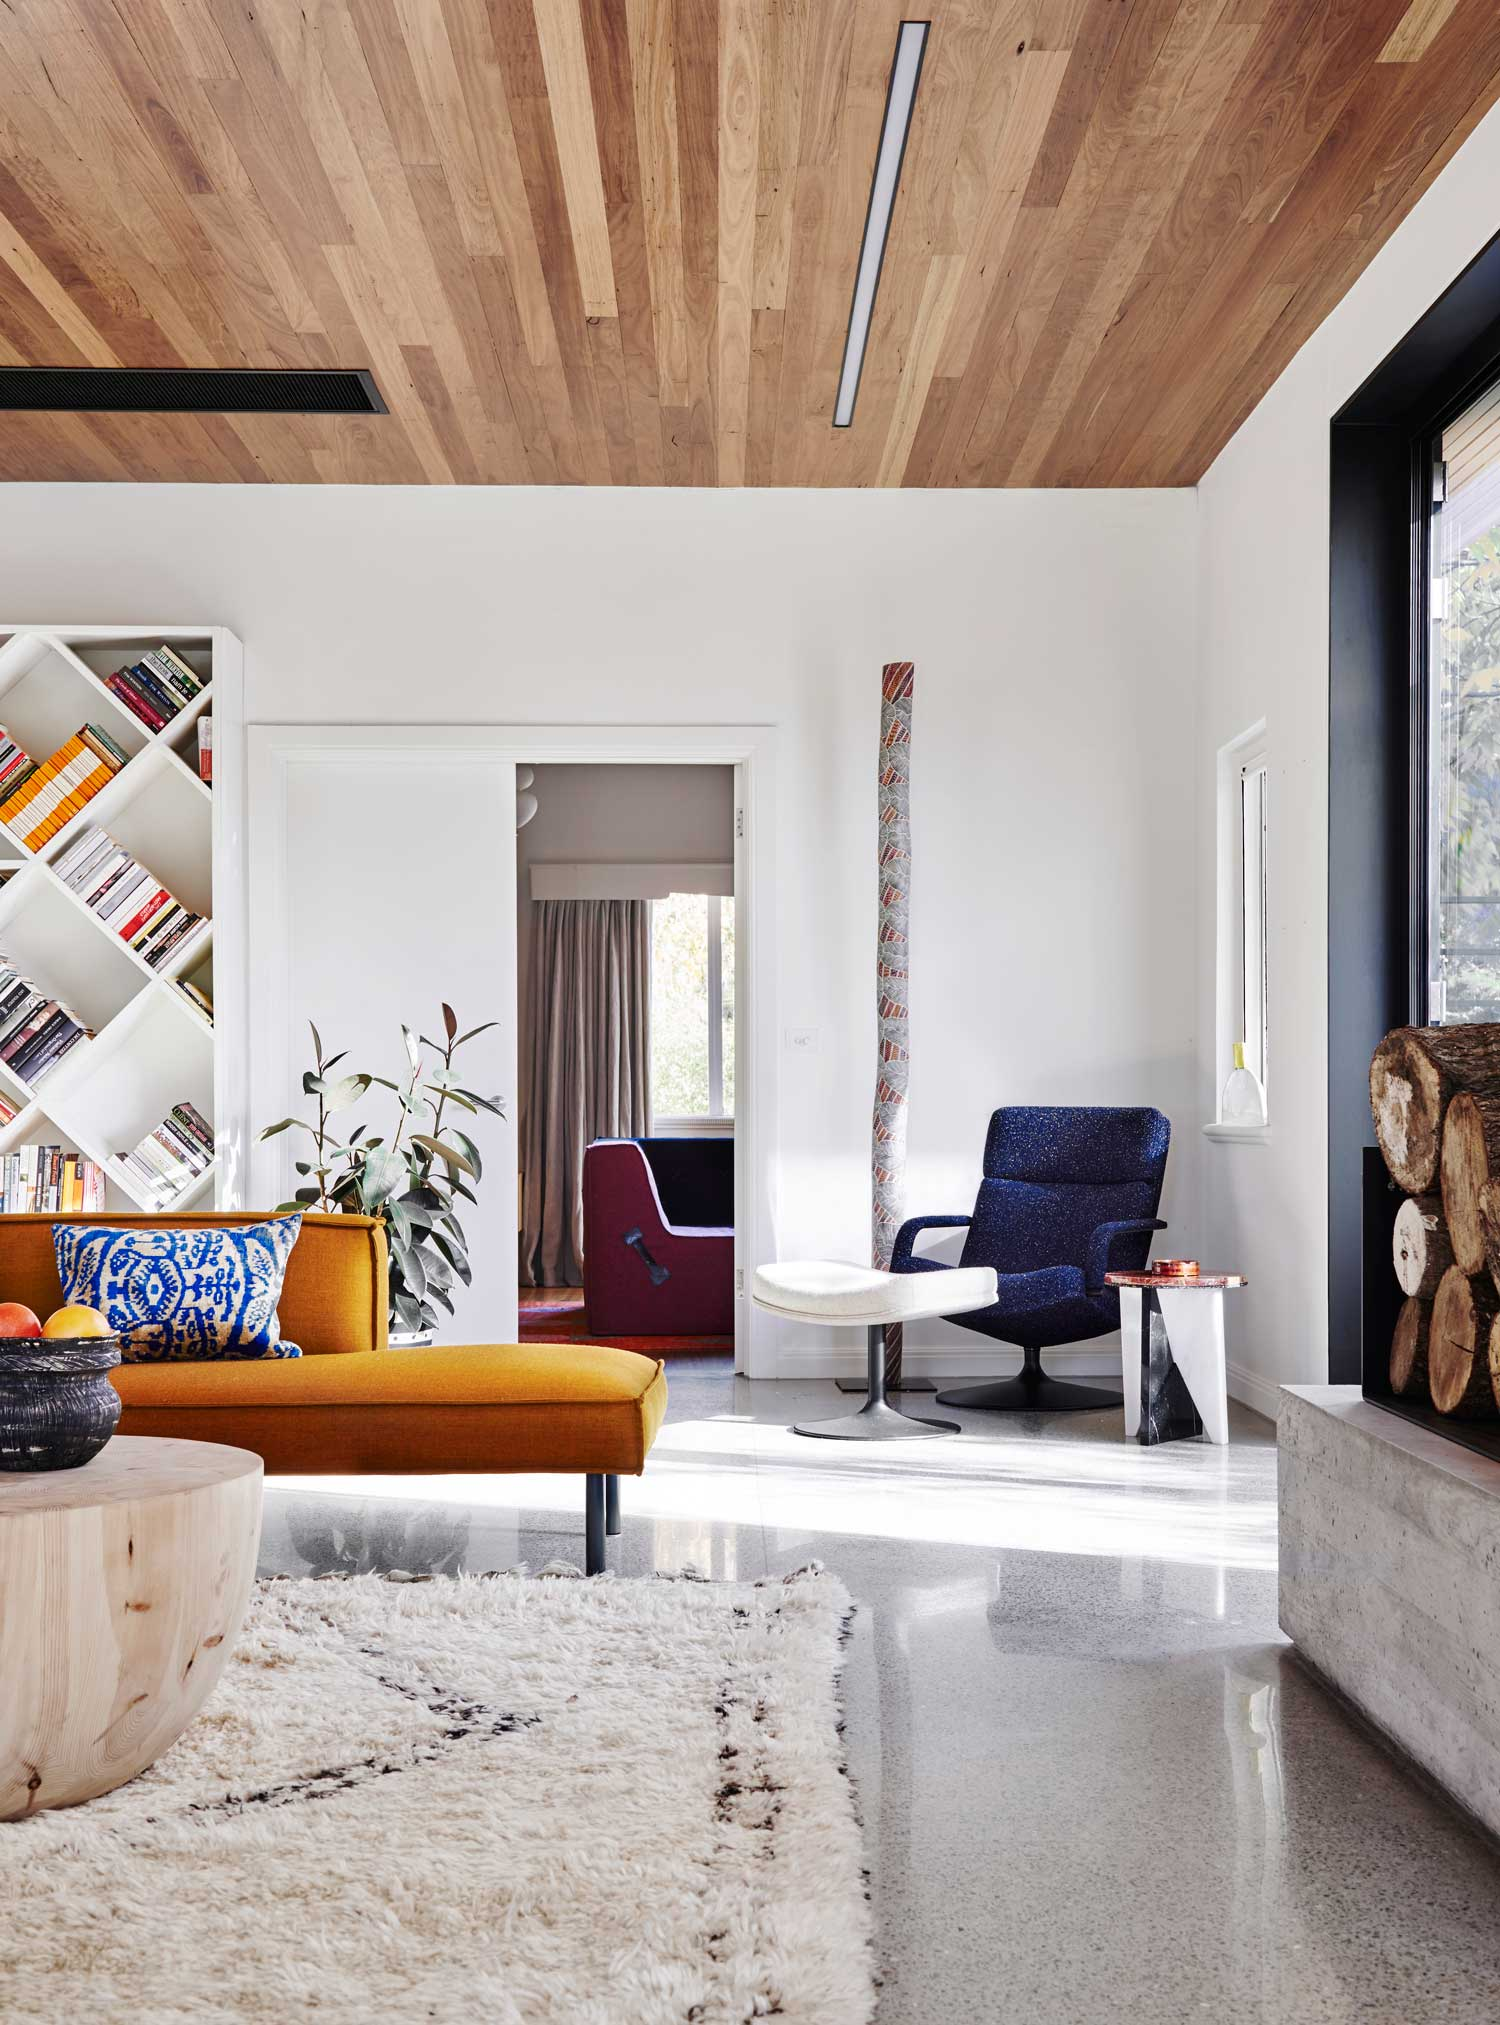 Deco House by Amber Road. Photo by Lisa Cohen | Yellowtrace